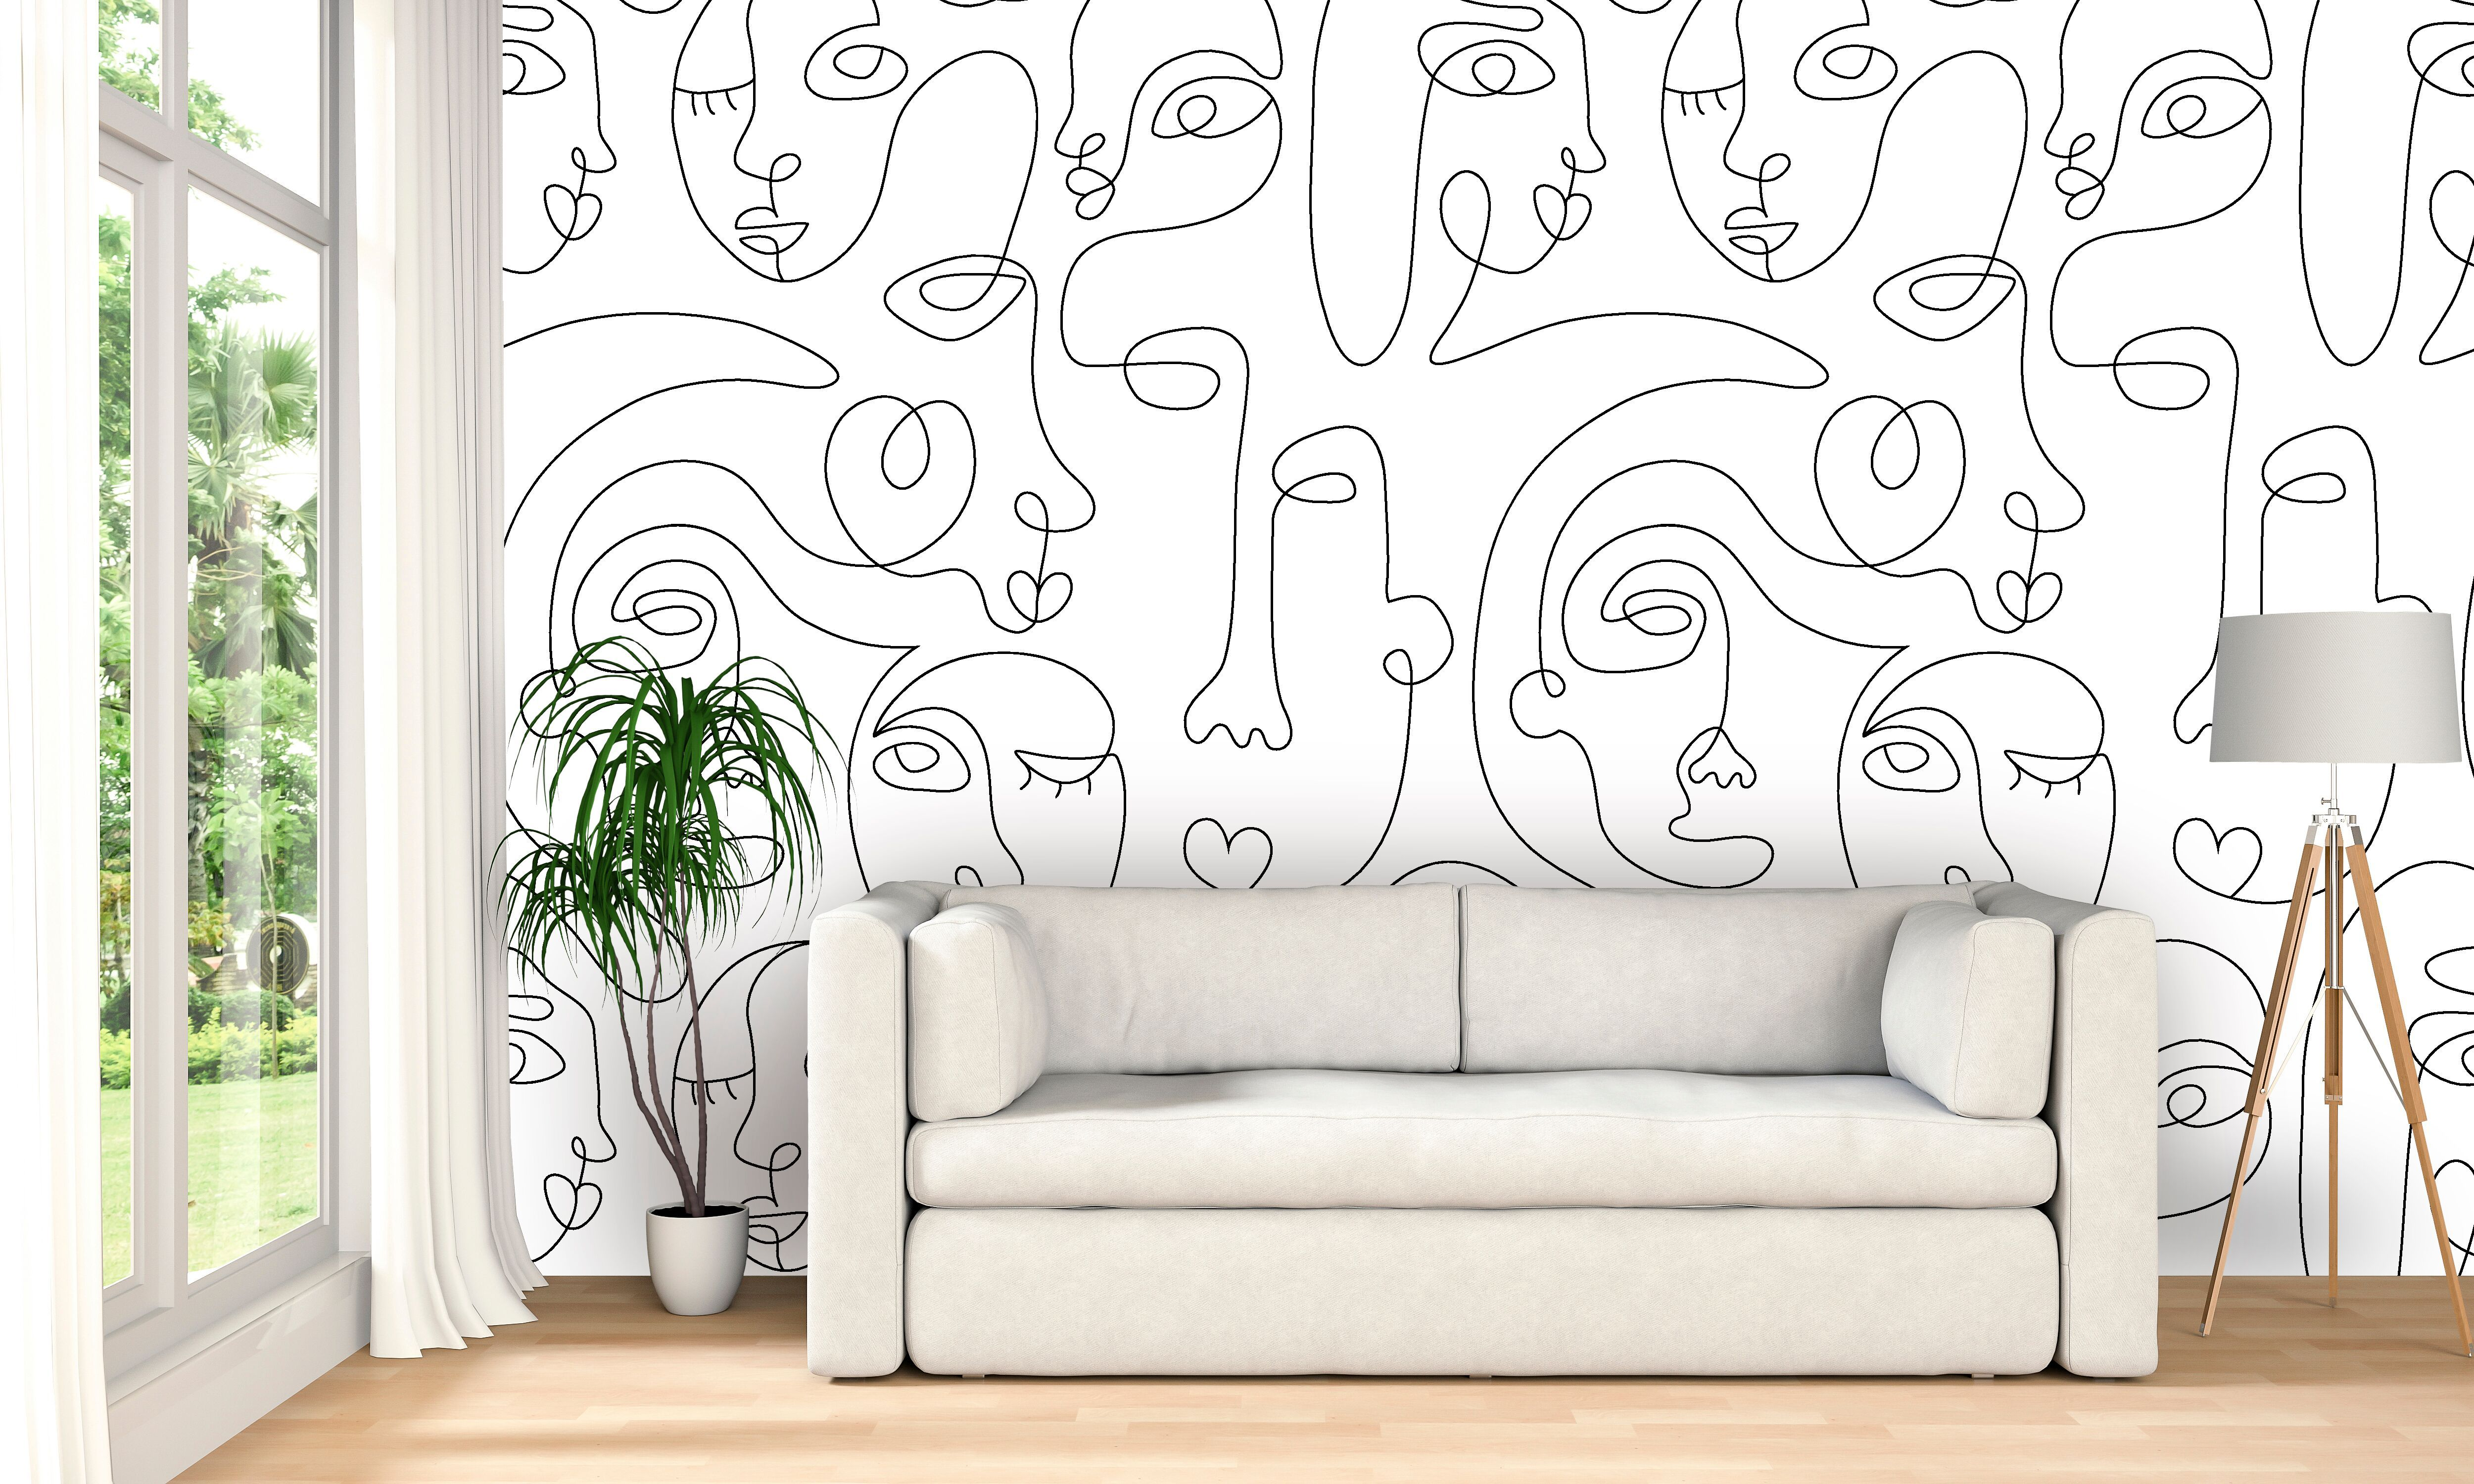 Picasso Style Wallpaper Peel And Stick Self Adhesive Wallpaper Murals Pattern Wallpaper Mural Wallpaper Shop Wallpaper Custom Wallpaper